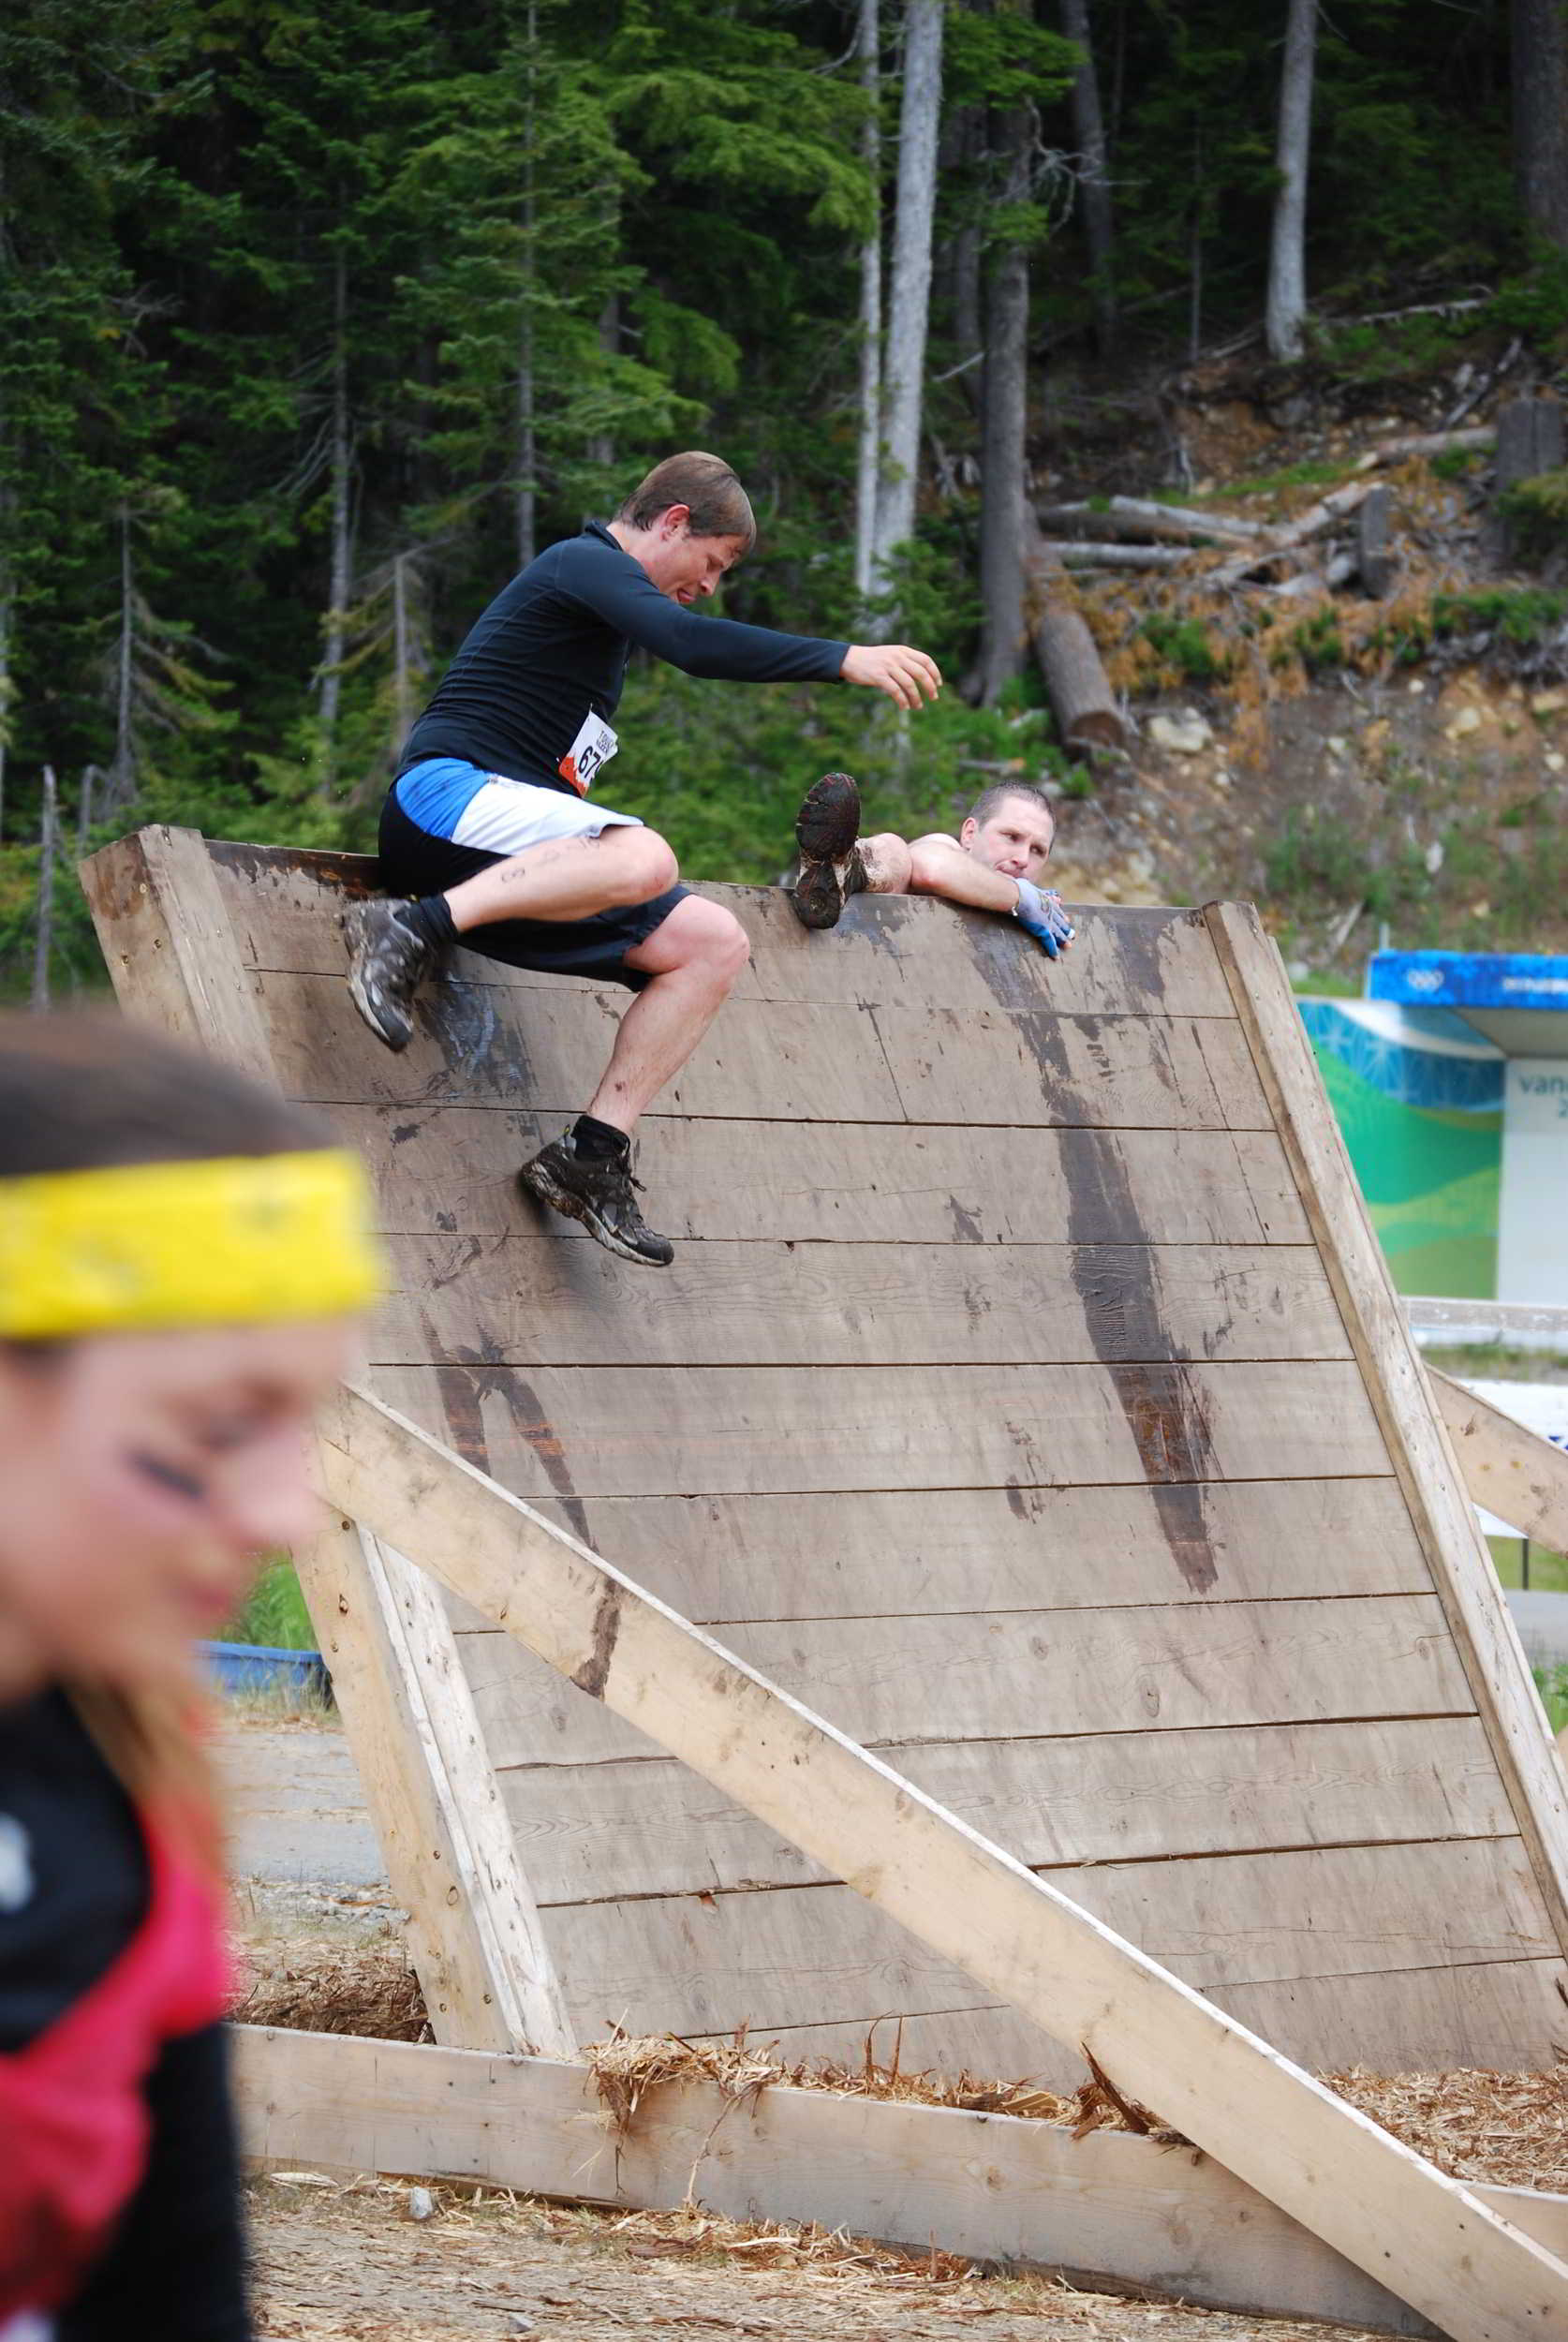 Crossing the Blades, Tough Mudder, Whistler, British Columbia, Canada